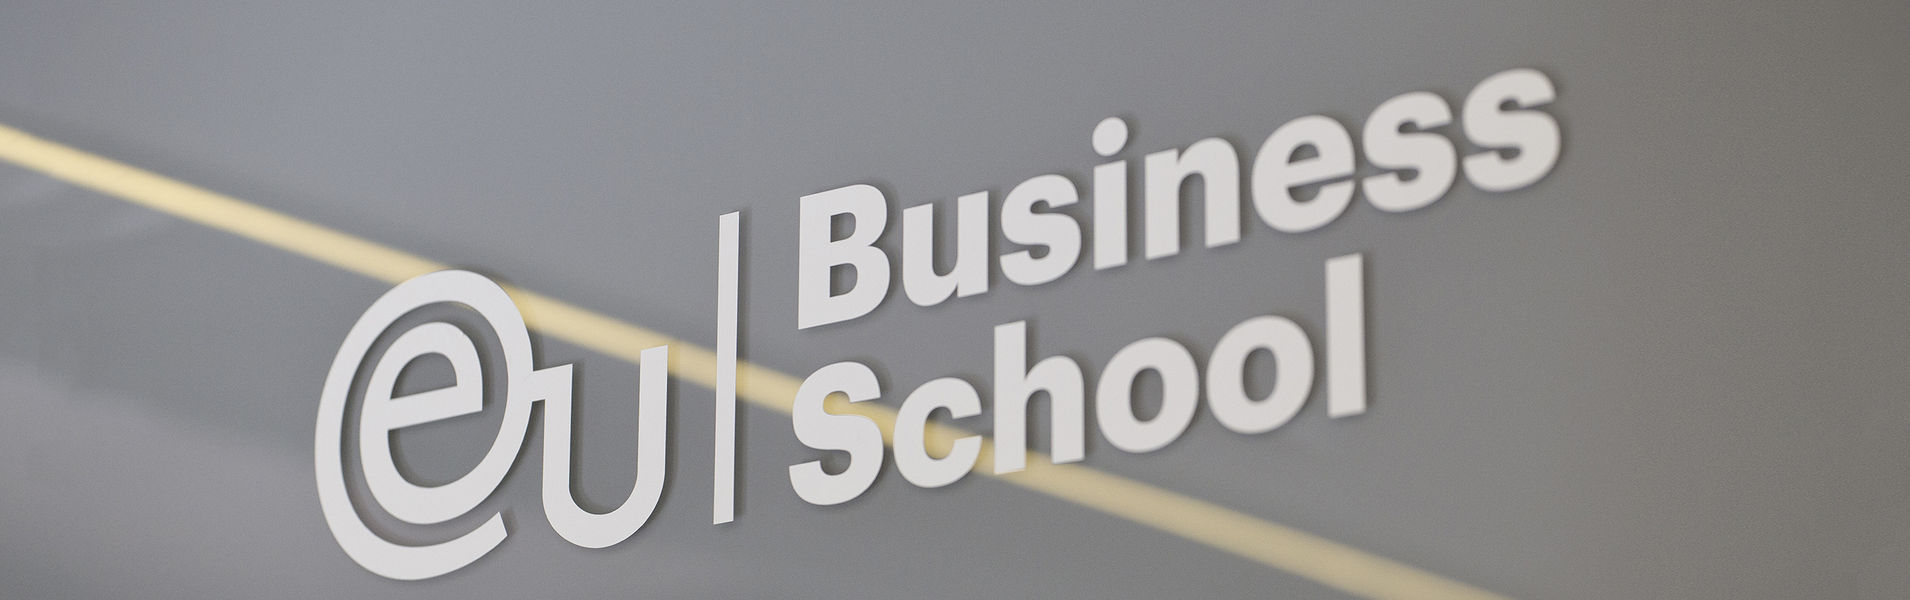 EU Business School Programs